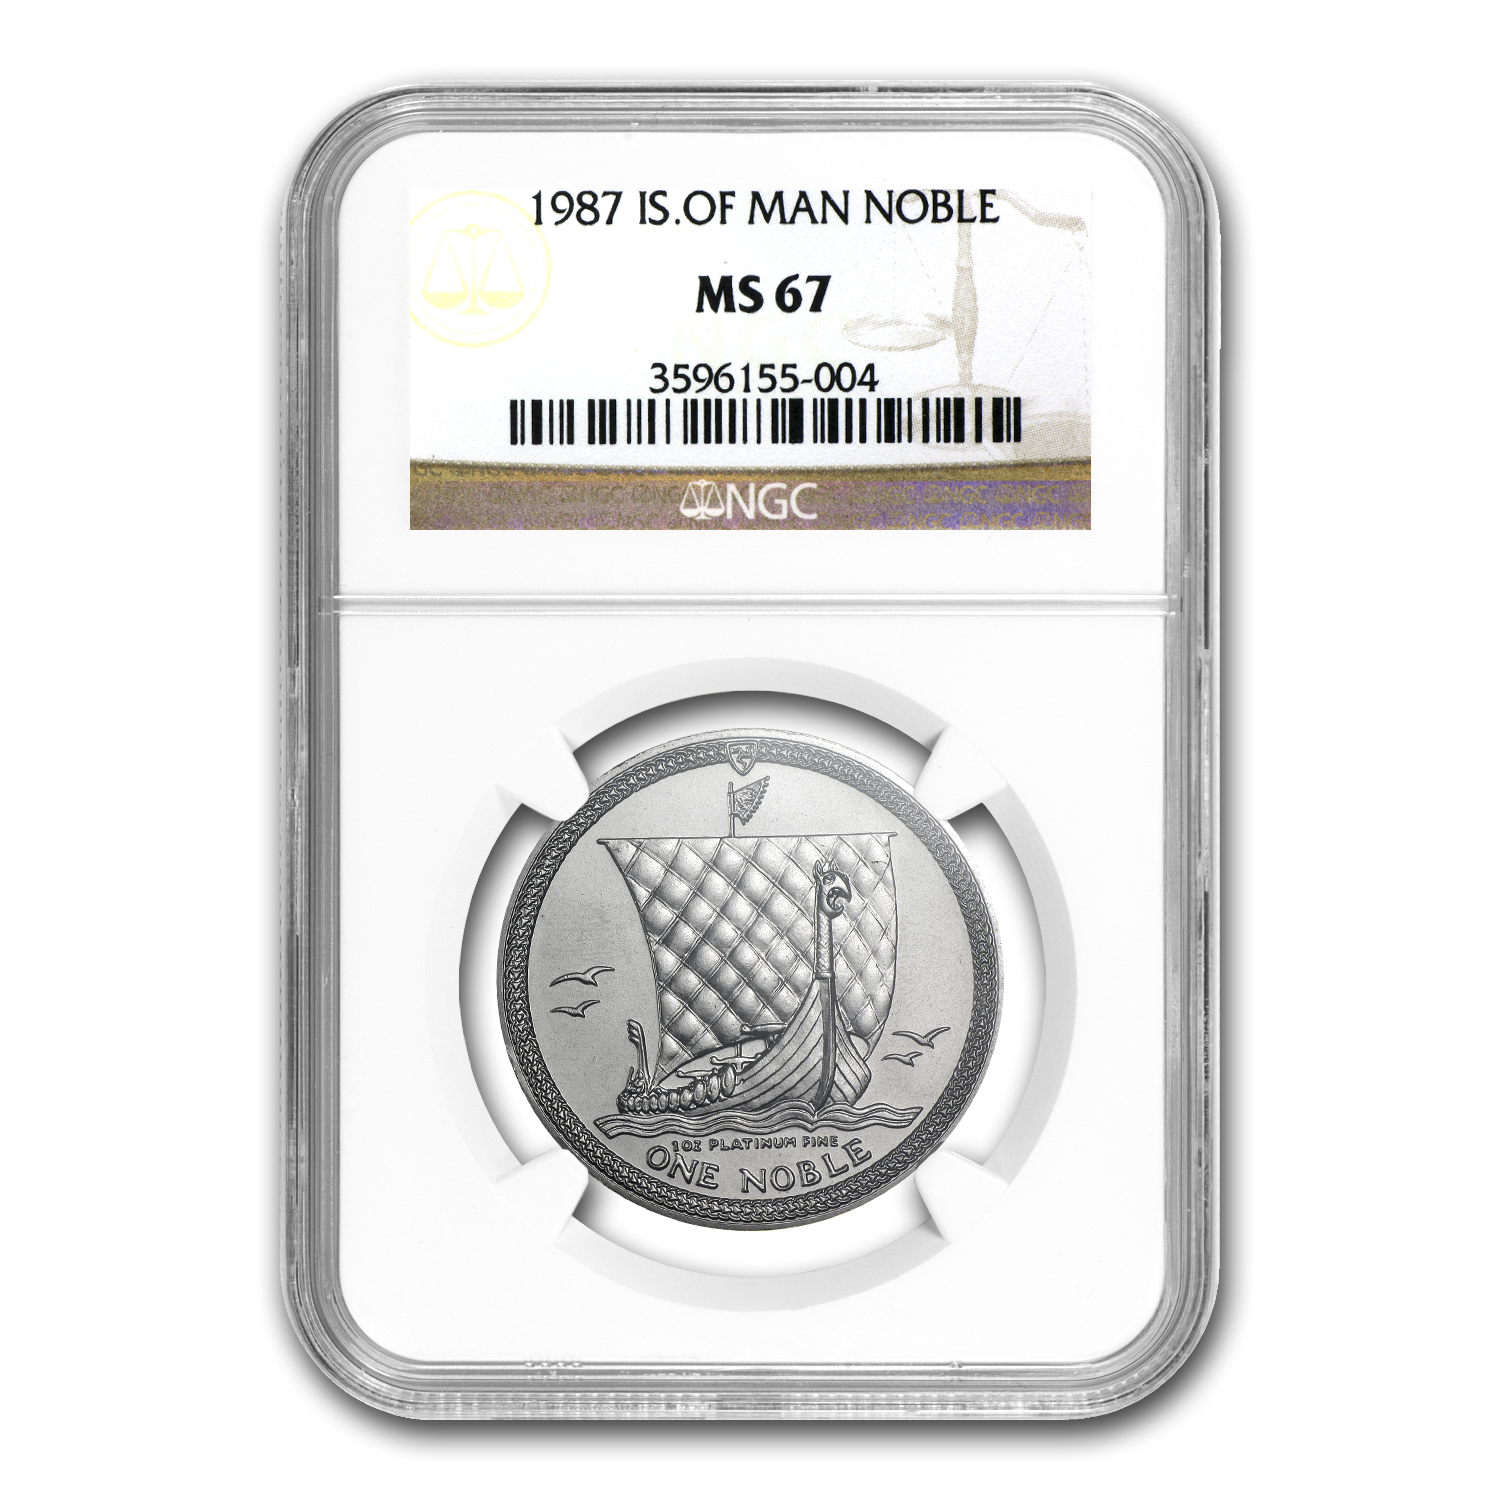 1987 1 oz Isle of Man Platinum Noble (MS-67 NGC)